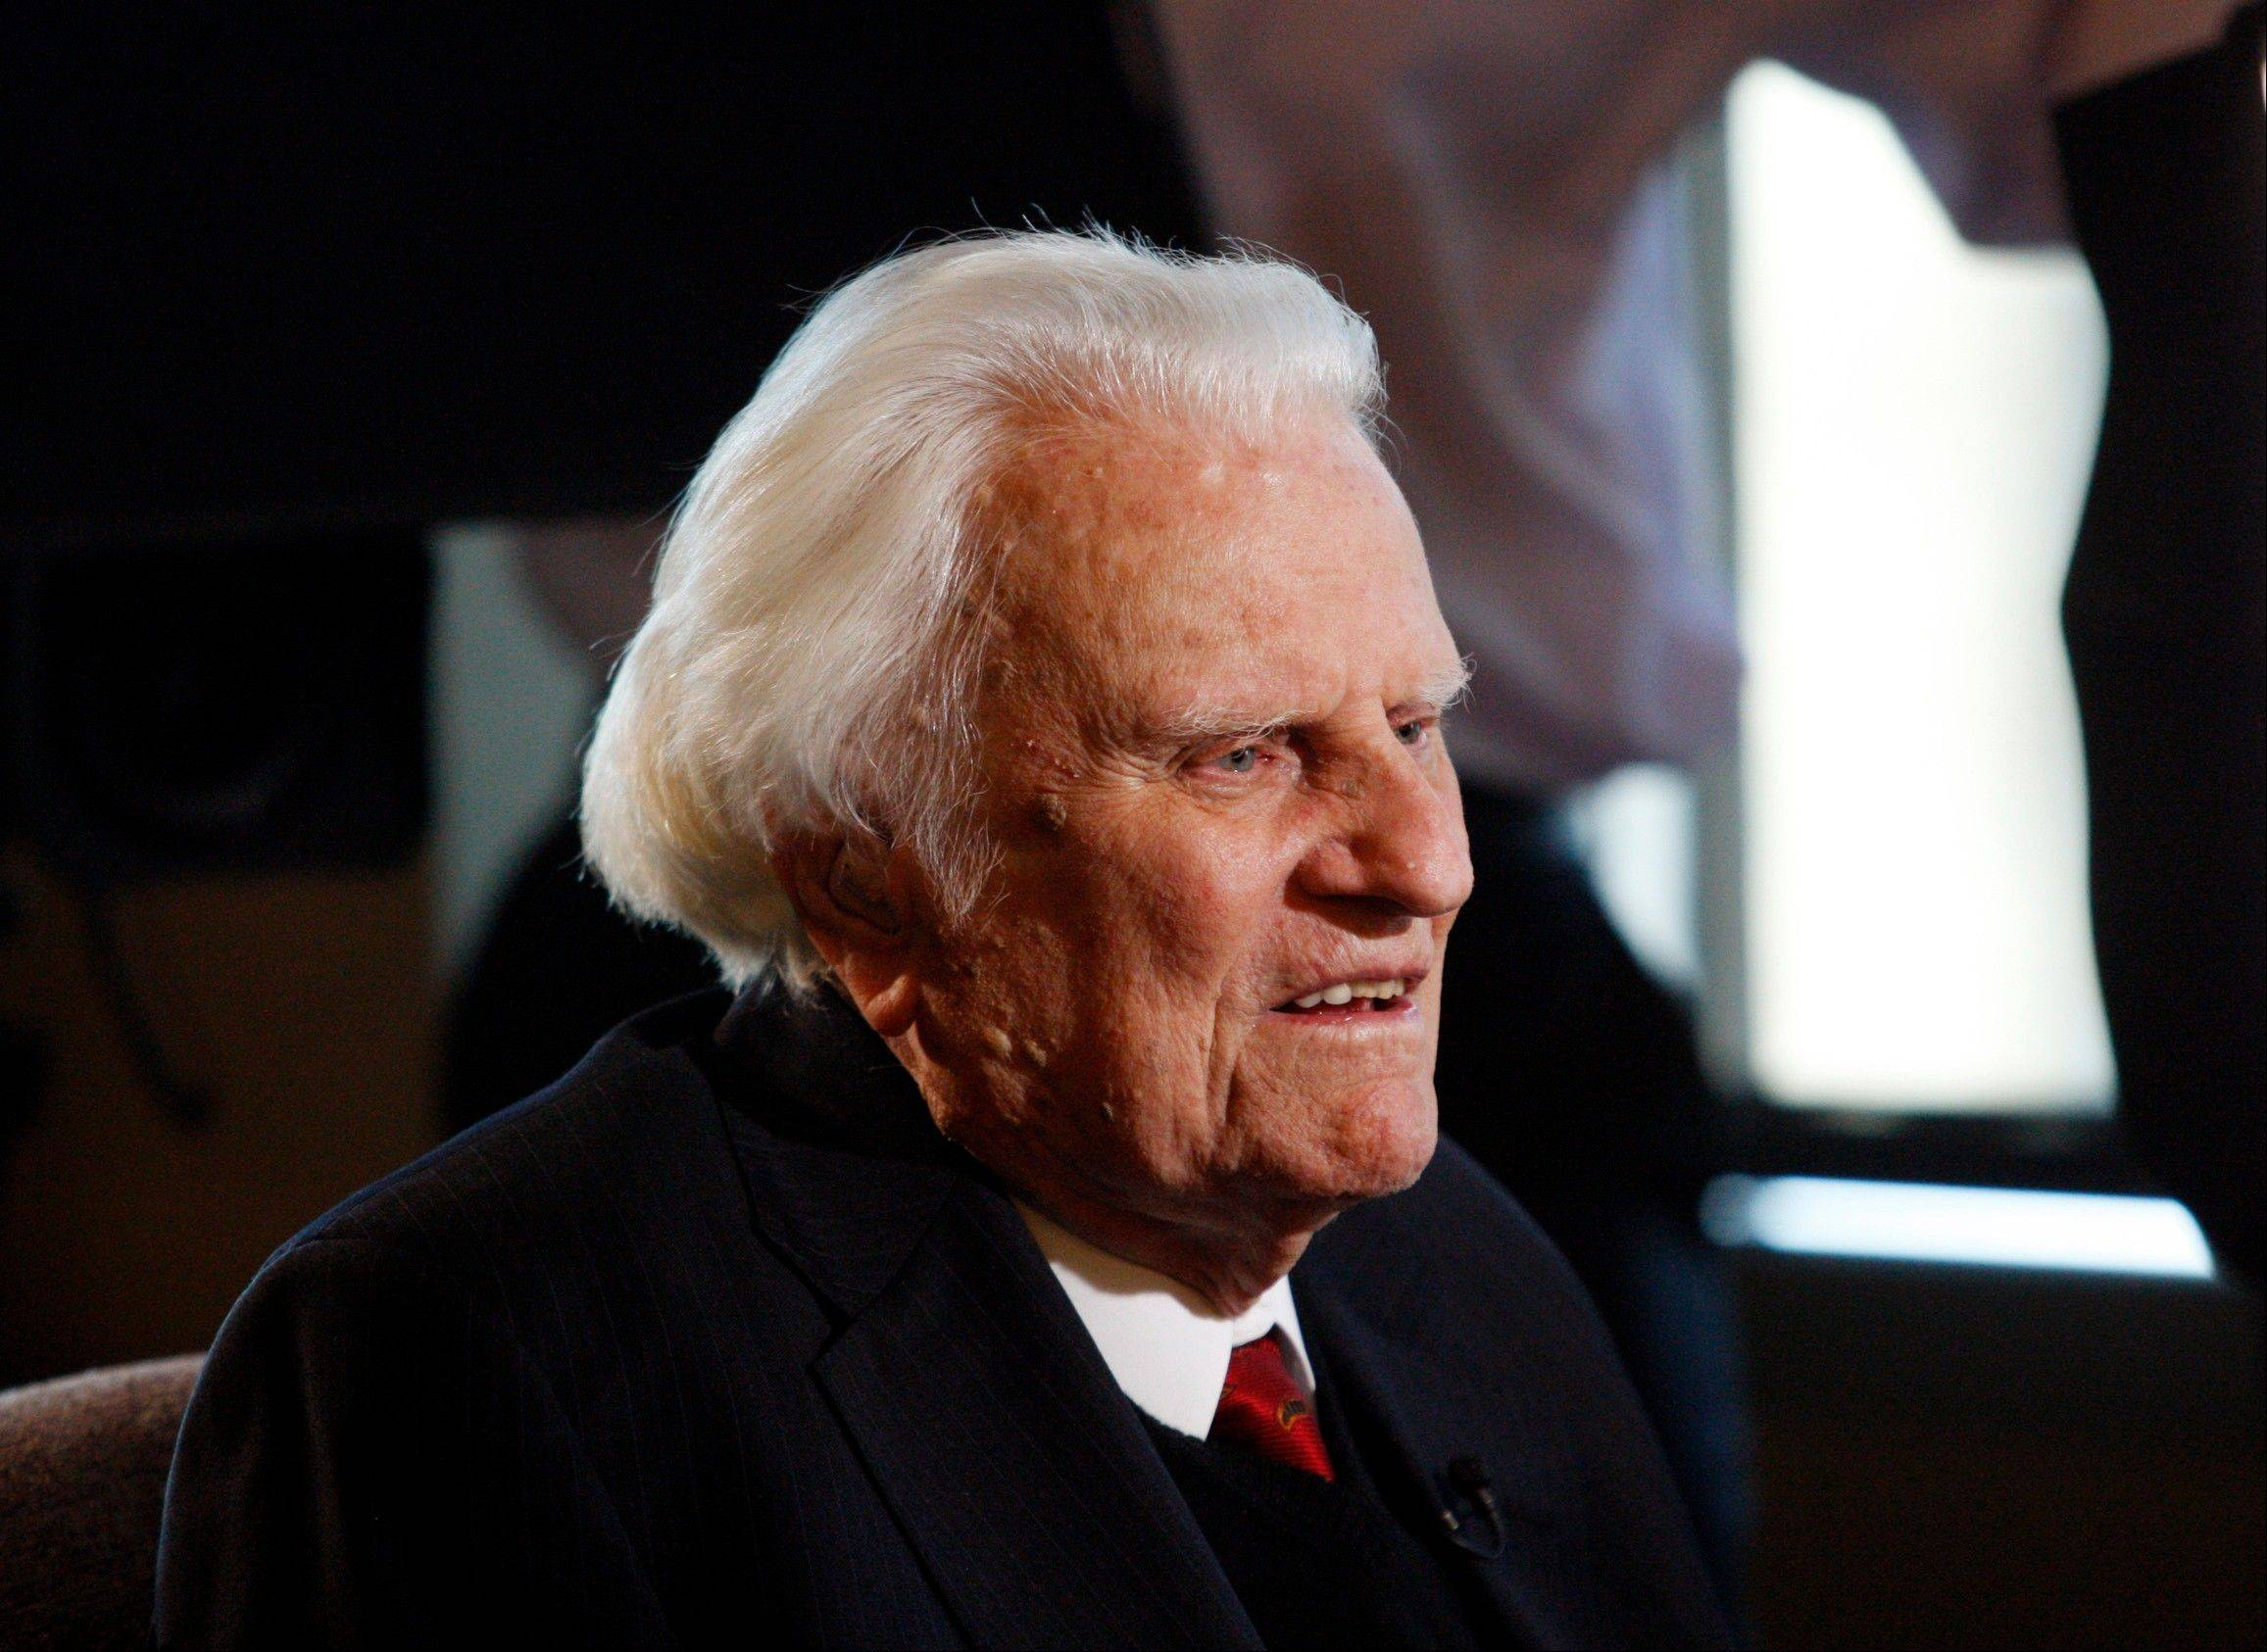 Evangelist Billy Graham, 95, has been admitted for respiratory issues at Mission Hospital in Asheville, N.C. DeMoss says he expected Graham would be able to go home in a day or so.